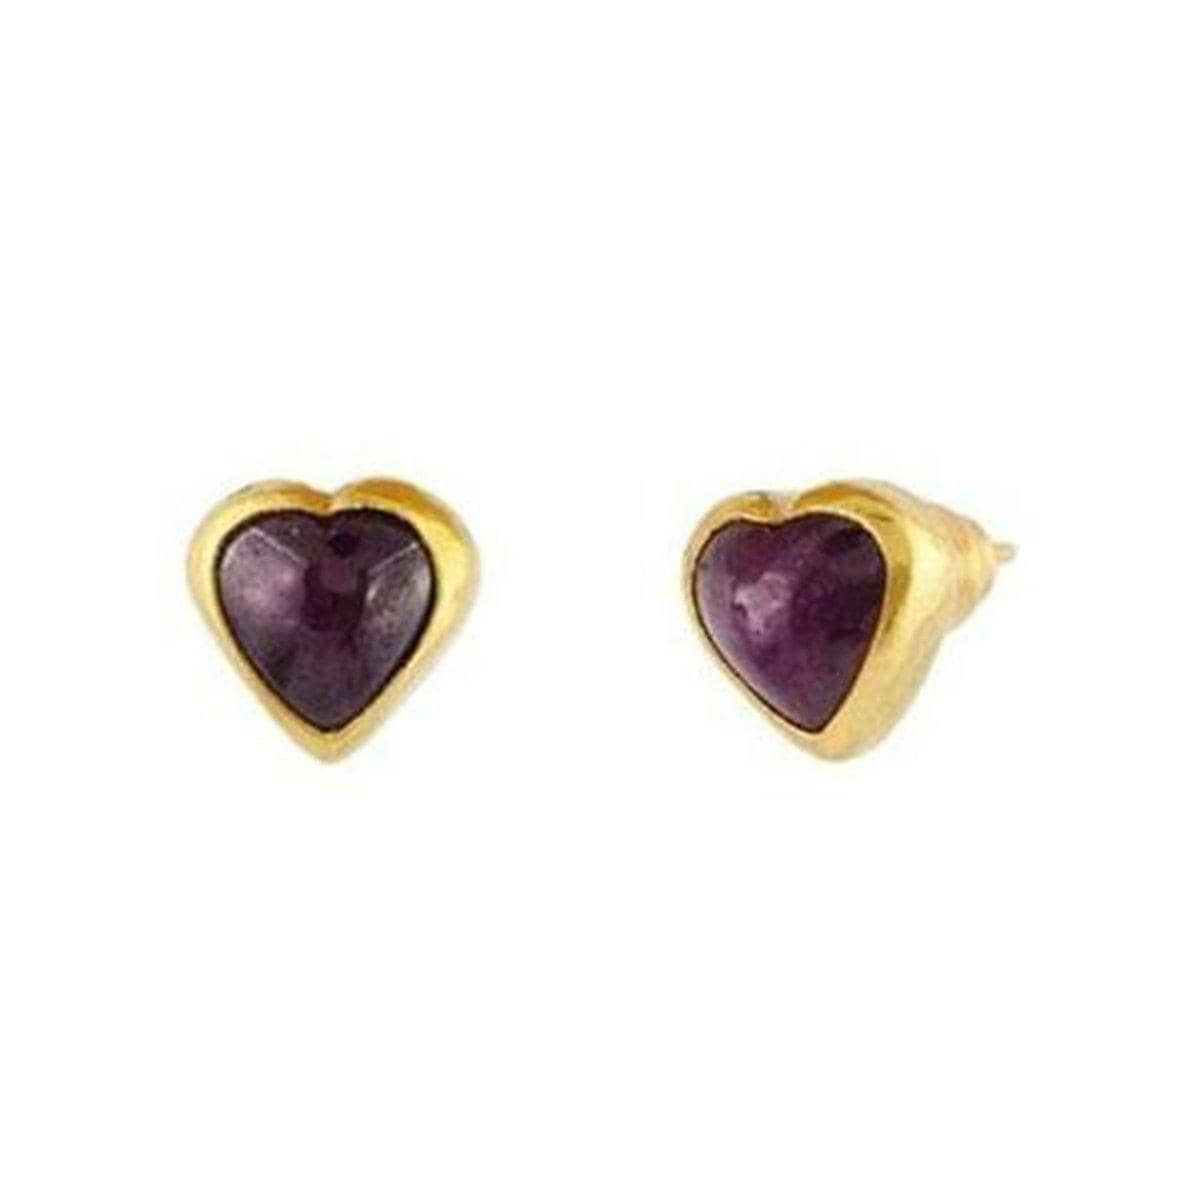 Juju 24K Gold Ruby Earrings - E-U22535-RU-GURHAN-Renee Taylor Gallery